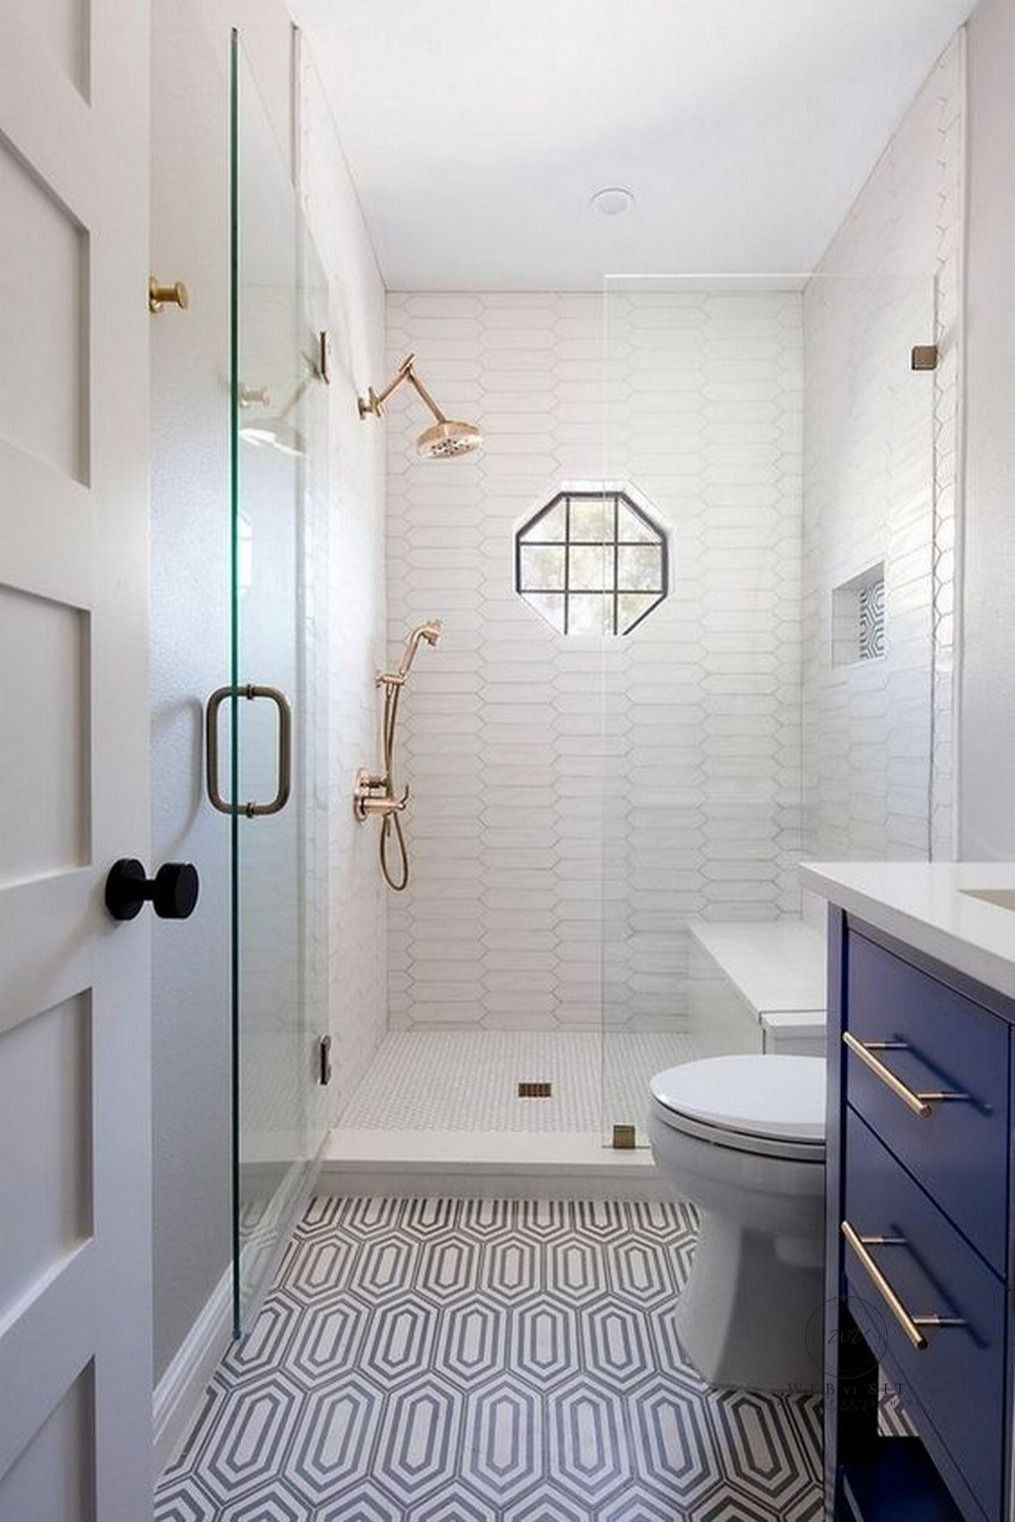 Diy Bathroom Transformation Incredible Before And After Makeover Alexandra Beuter You Diy Bathroom Remodel Bathroom Renovation Diy Bathroom Transformation